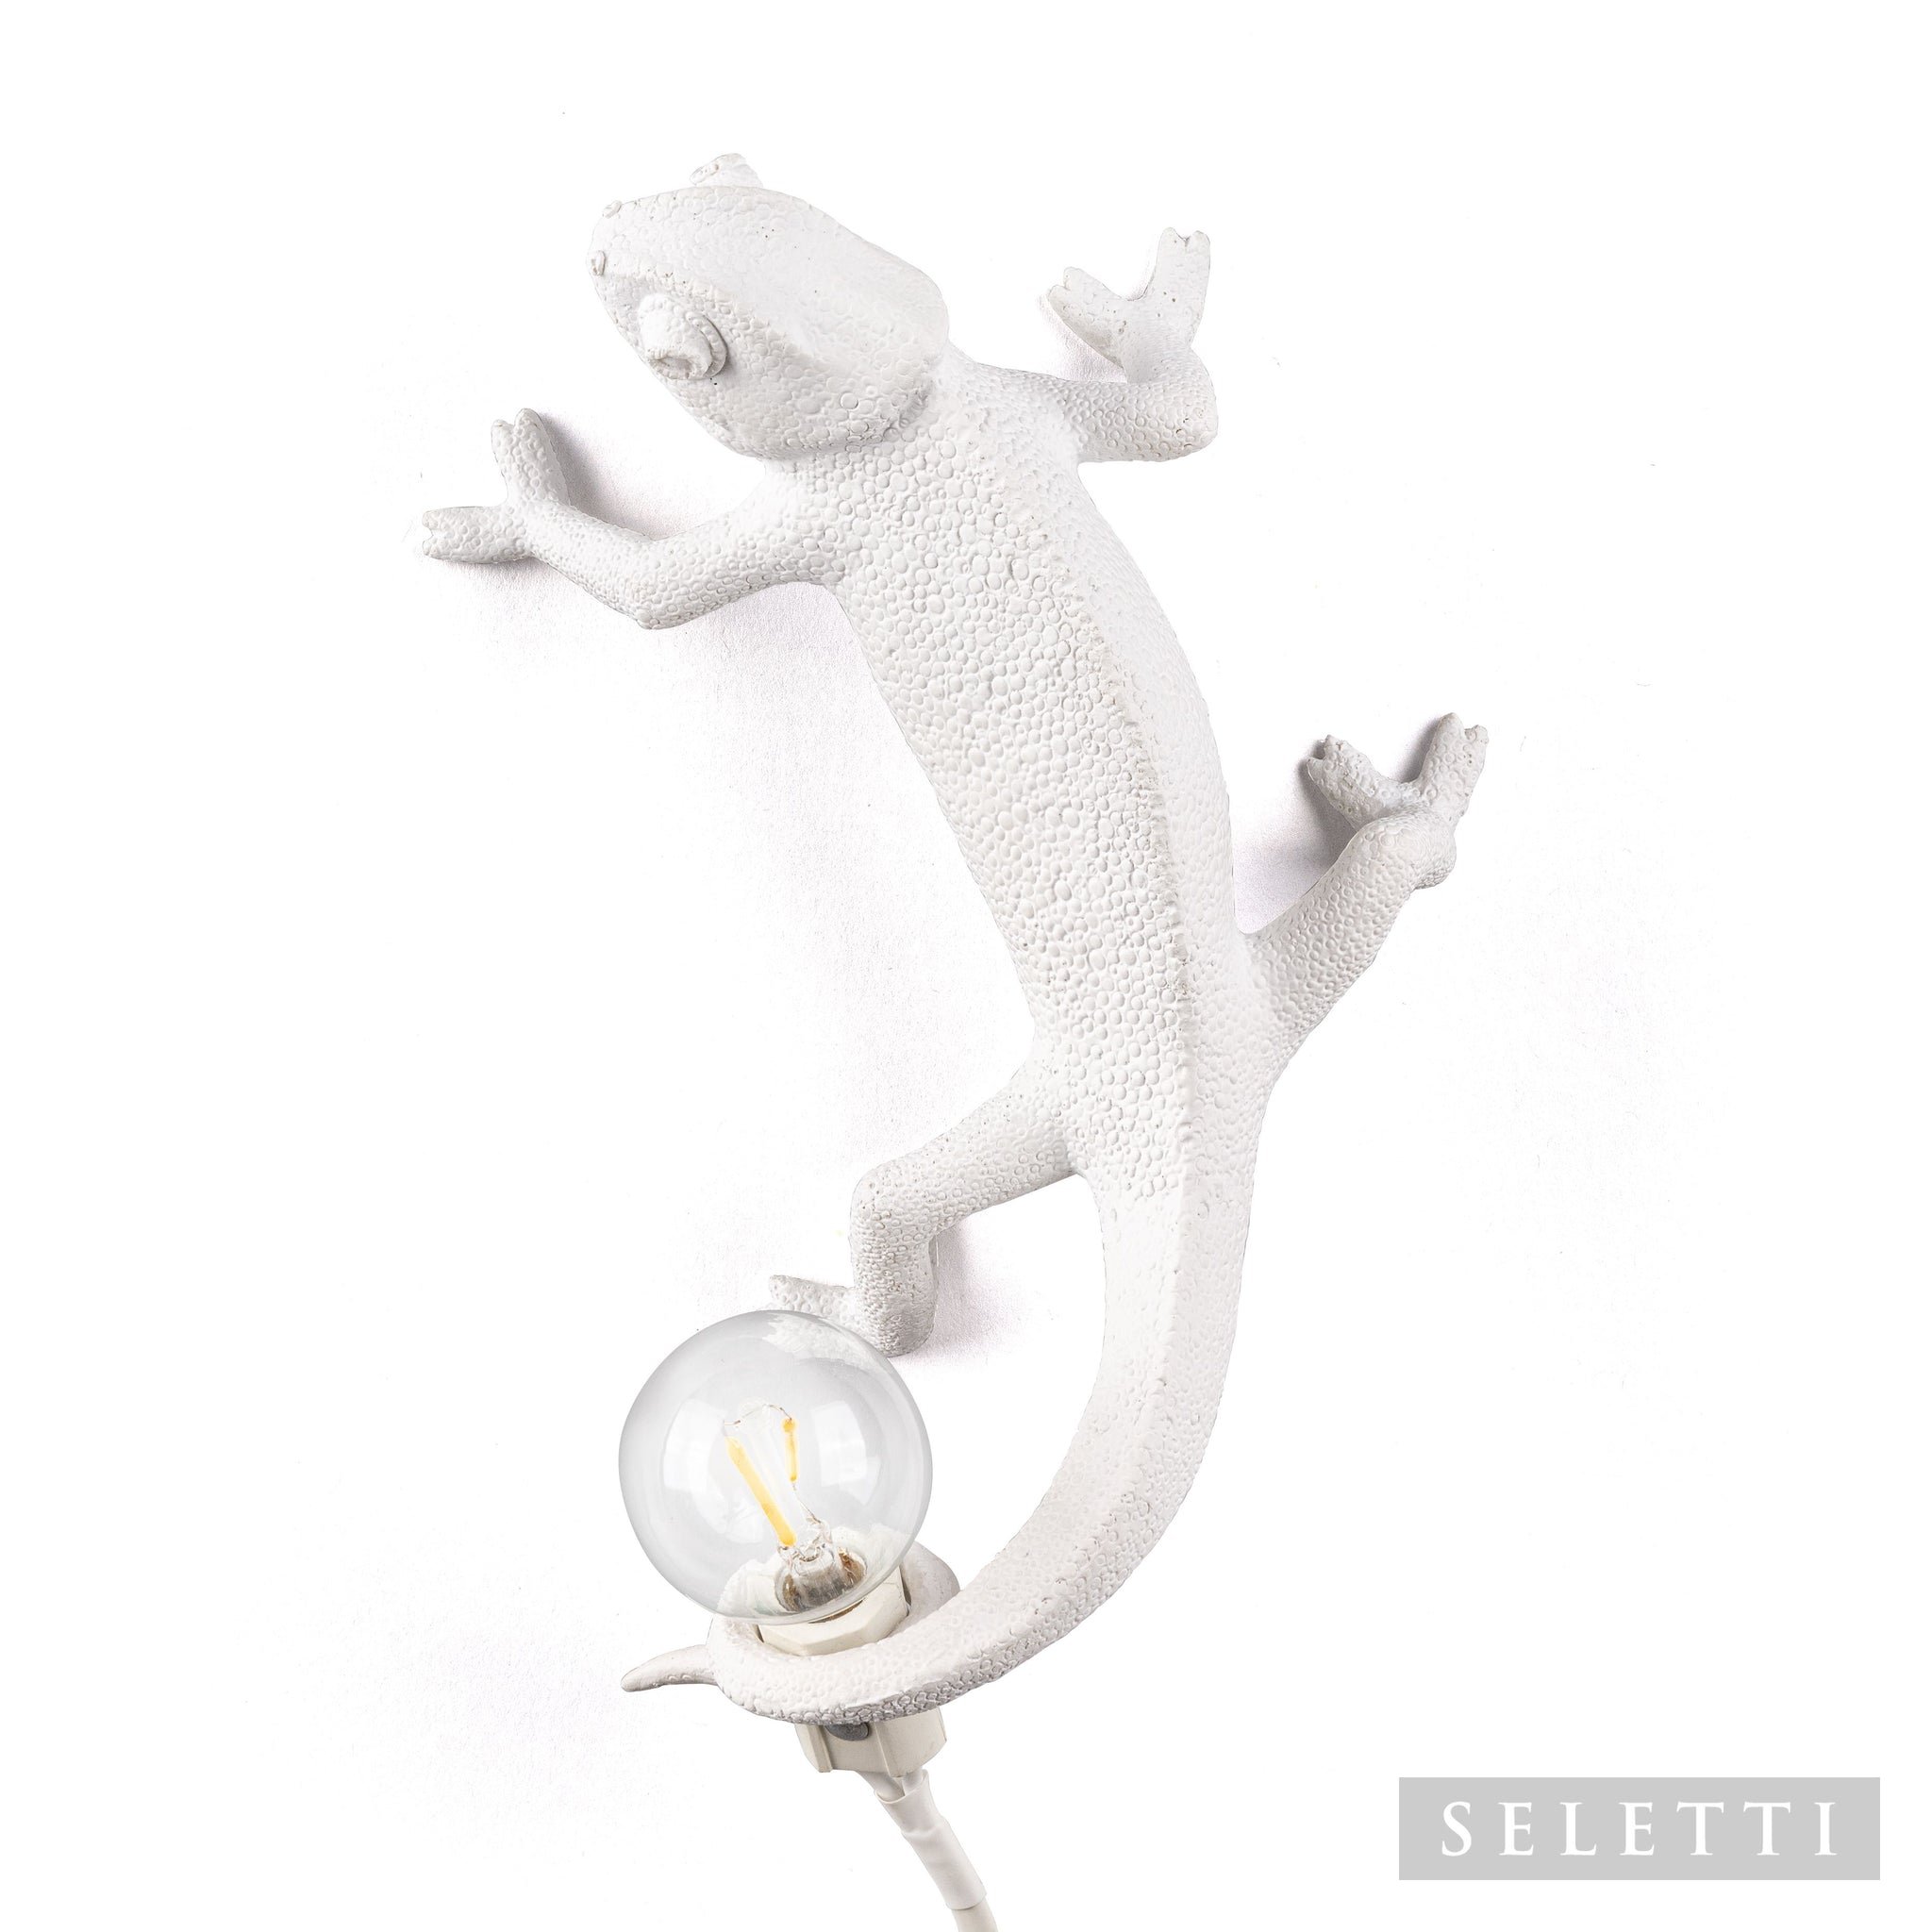 Chameleon Wall Lamp by Seletti